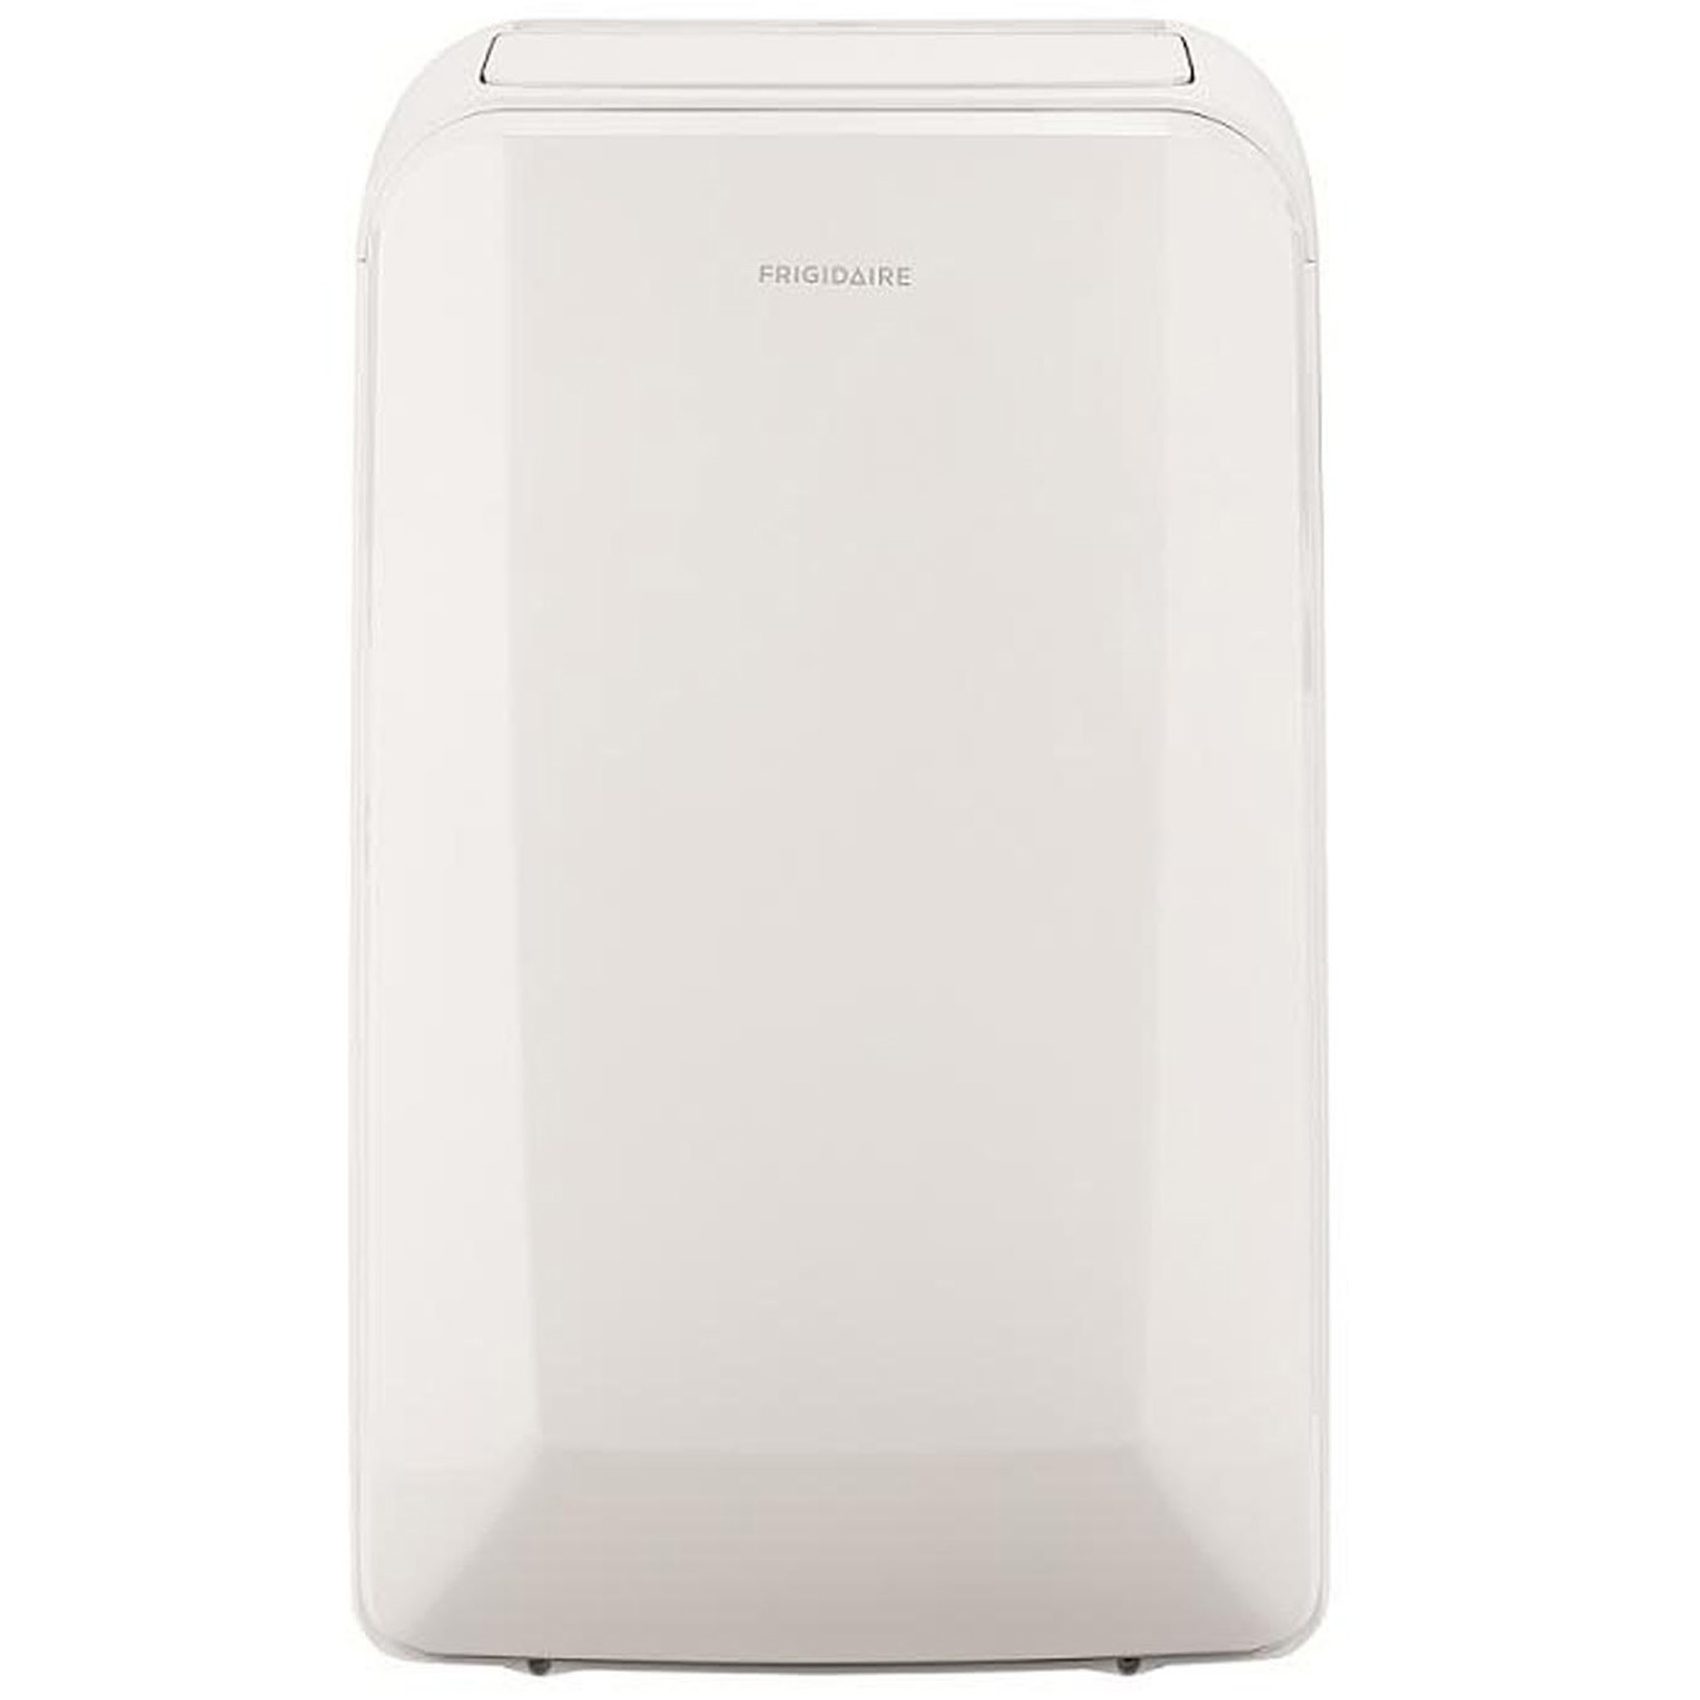 FRIGIDAIRE PORTABLE A/C FPOH12GE